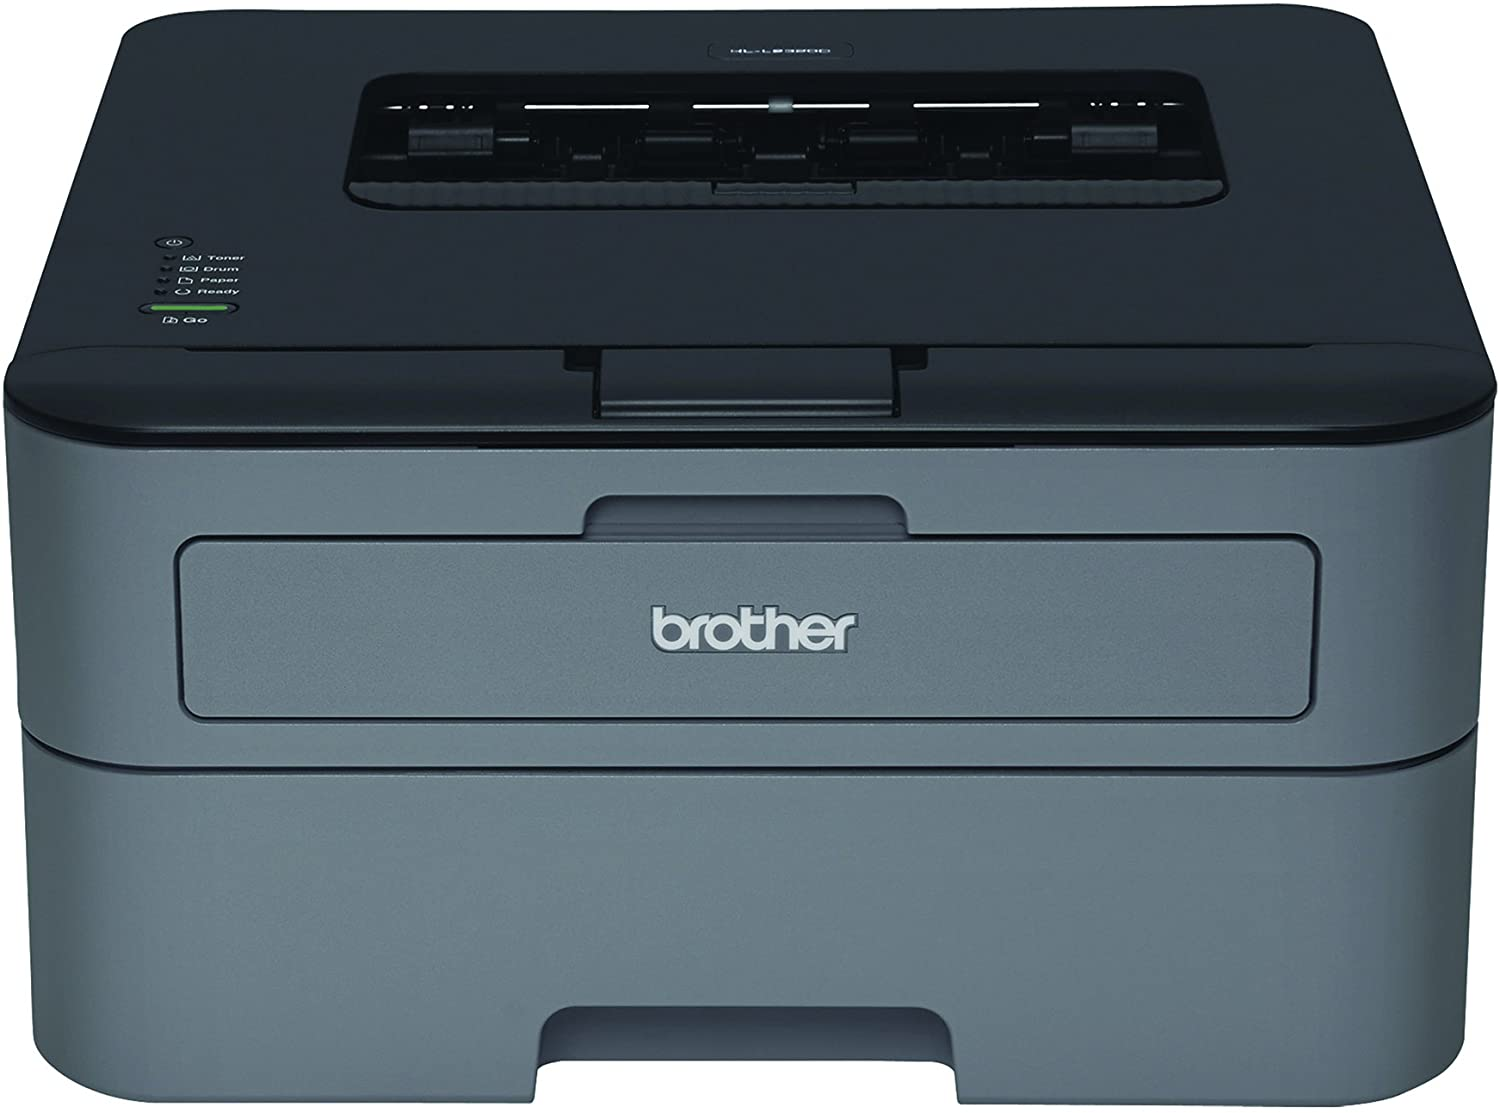 Brother Printer RHLL2320D Compact Laser Printer with Duplex Printing (Renewed)